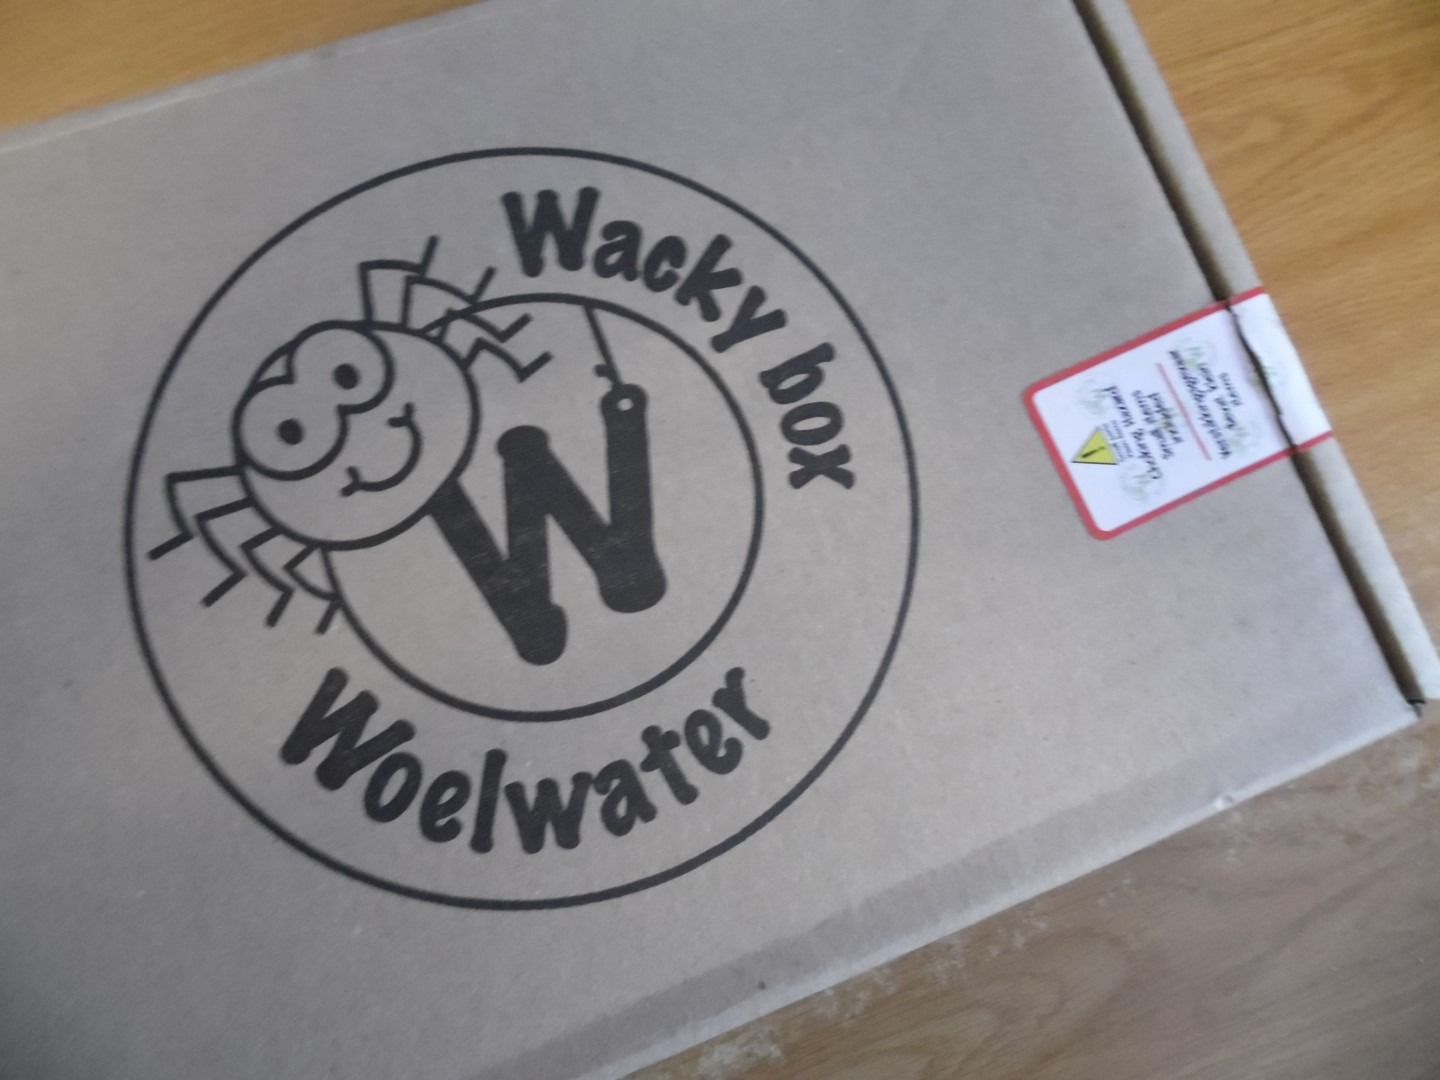 WackyBoxes South Africa - By Megan Kelly